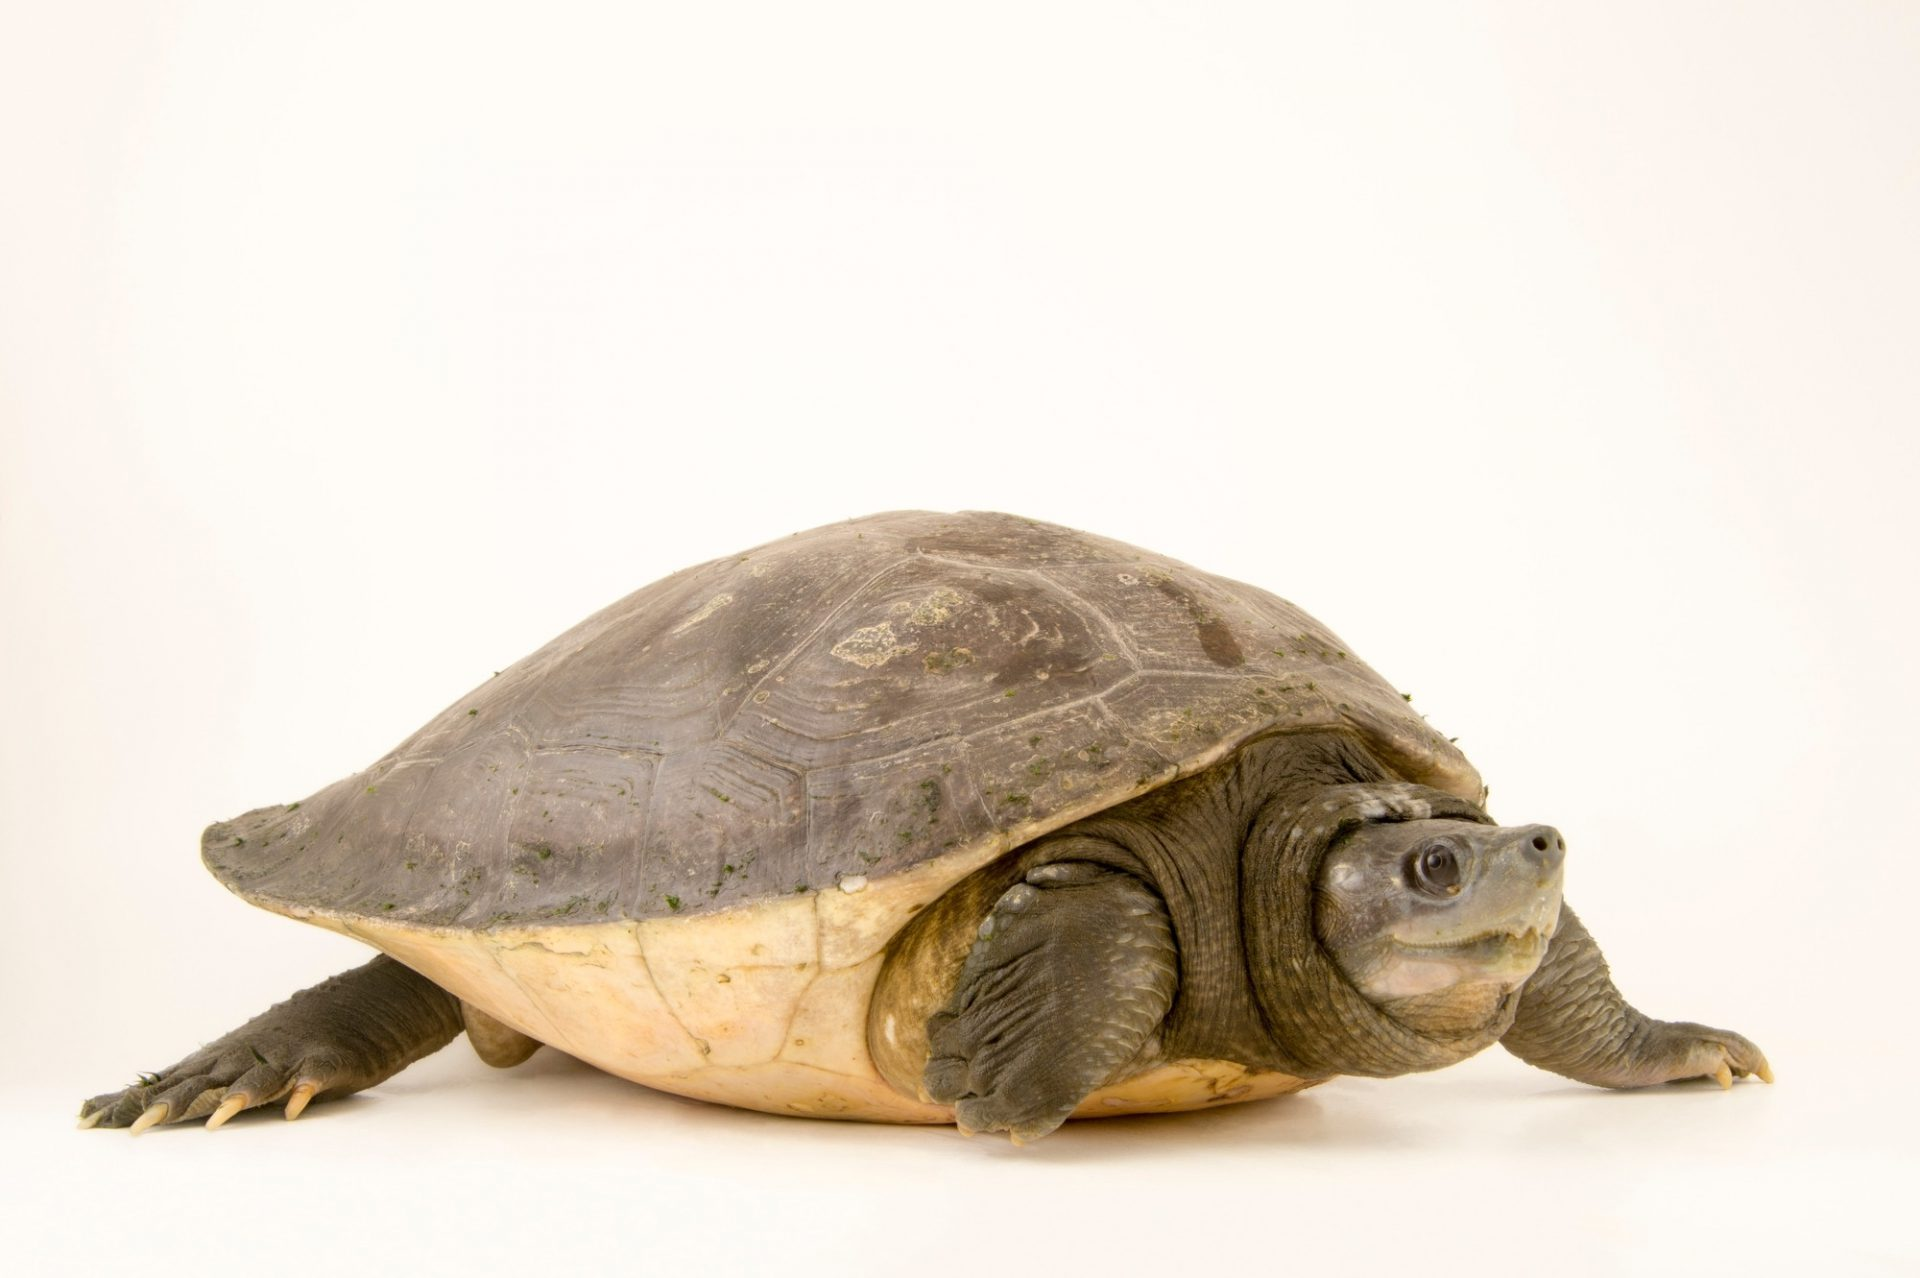 Photo: A critically endangered southern river terrapin (Batagur affinis) at the San Antonio Zoo.